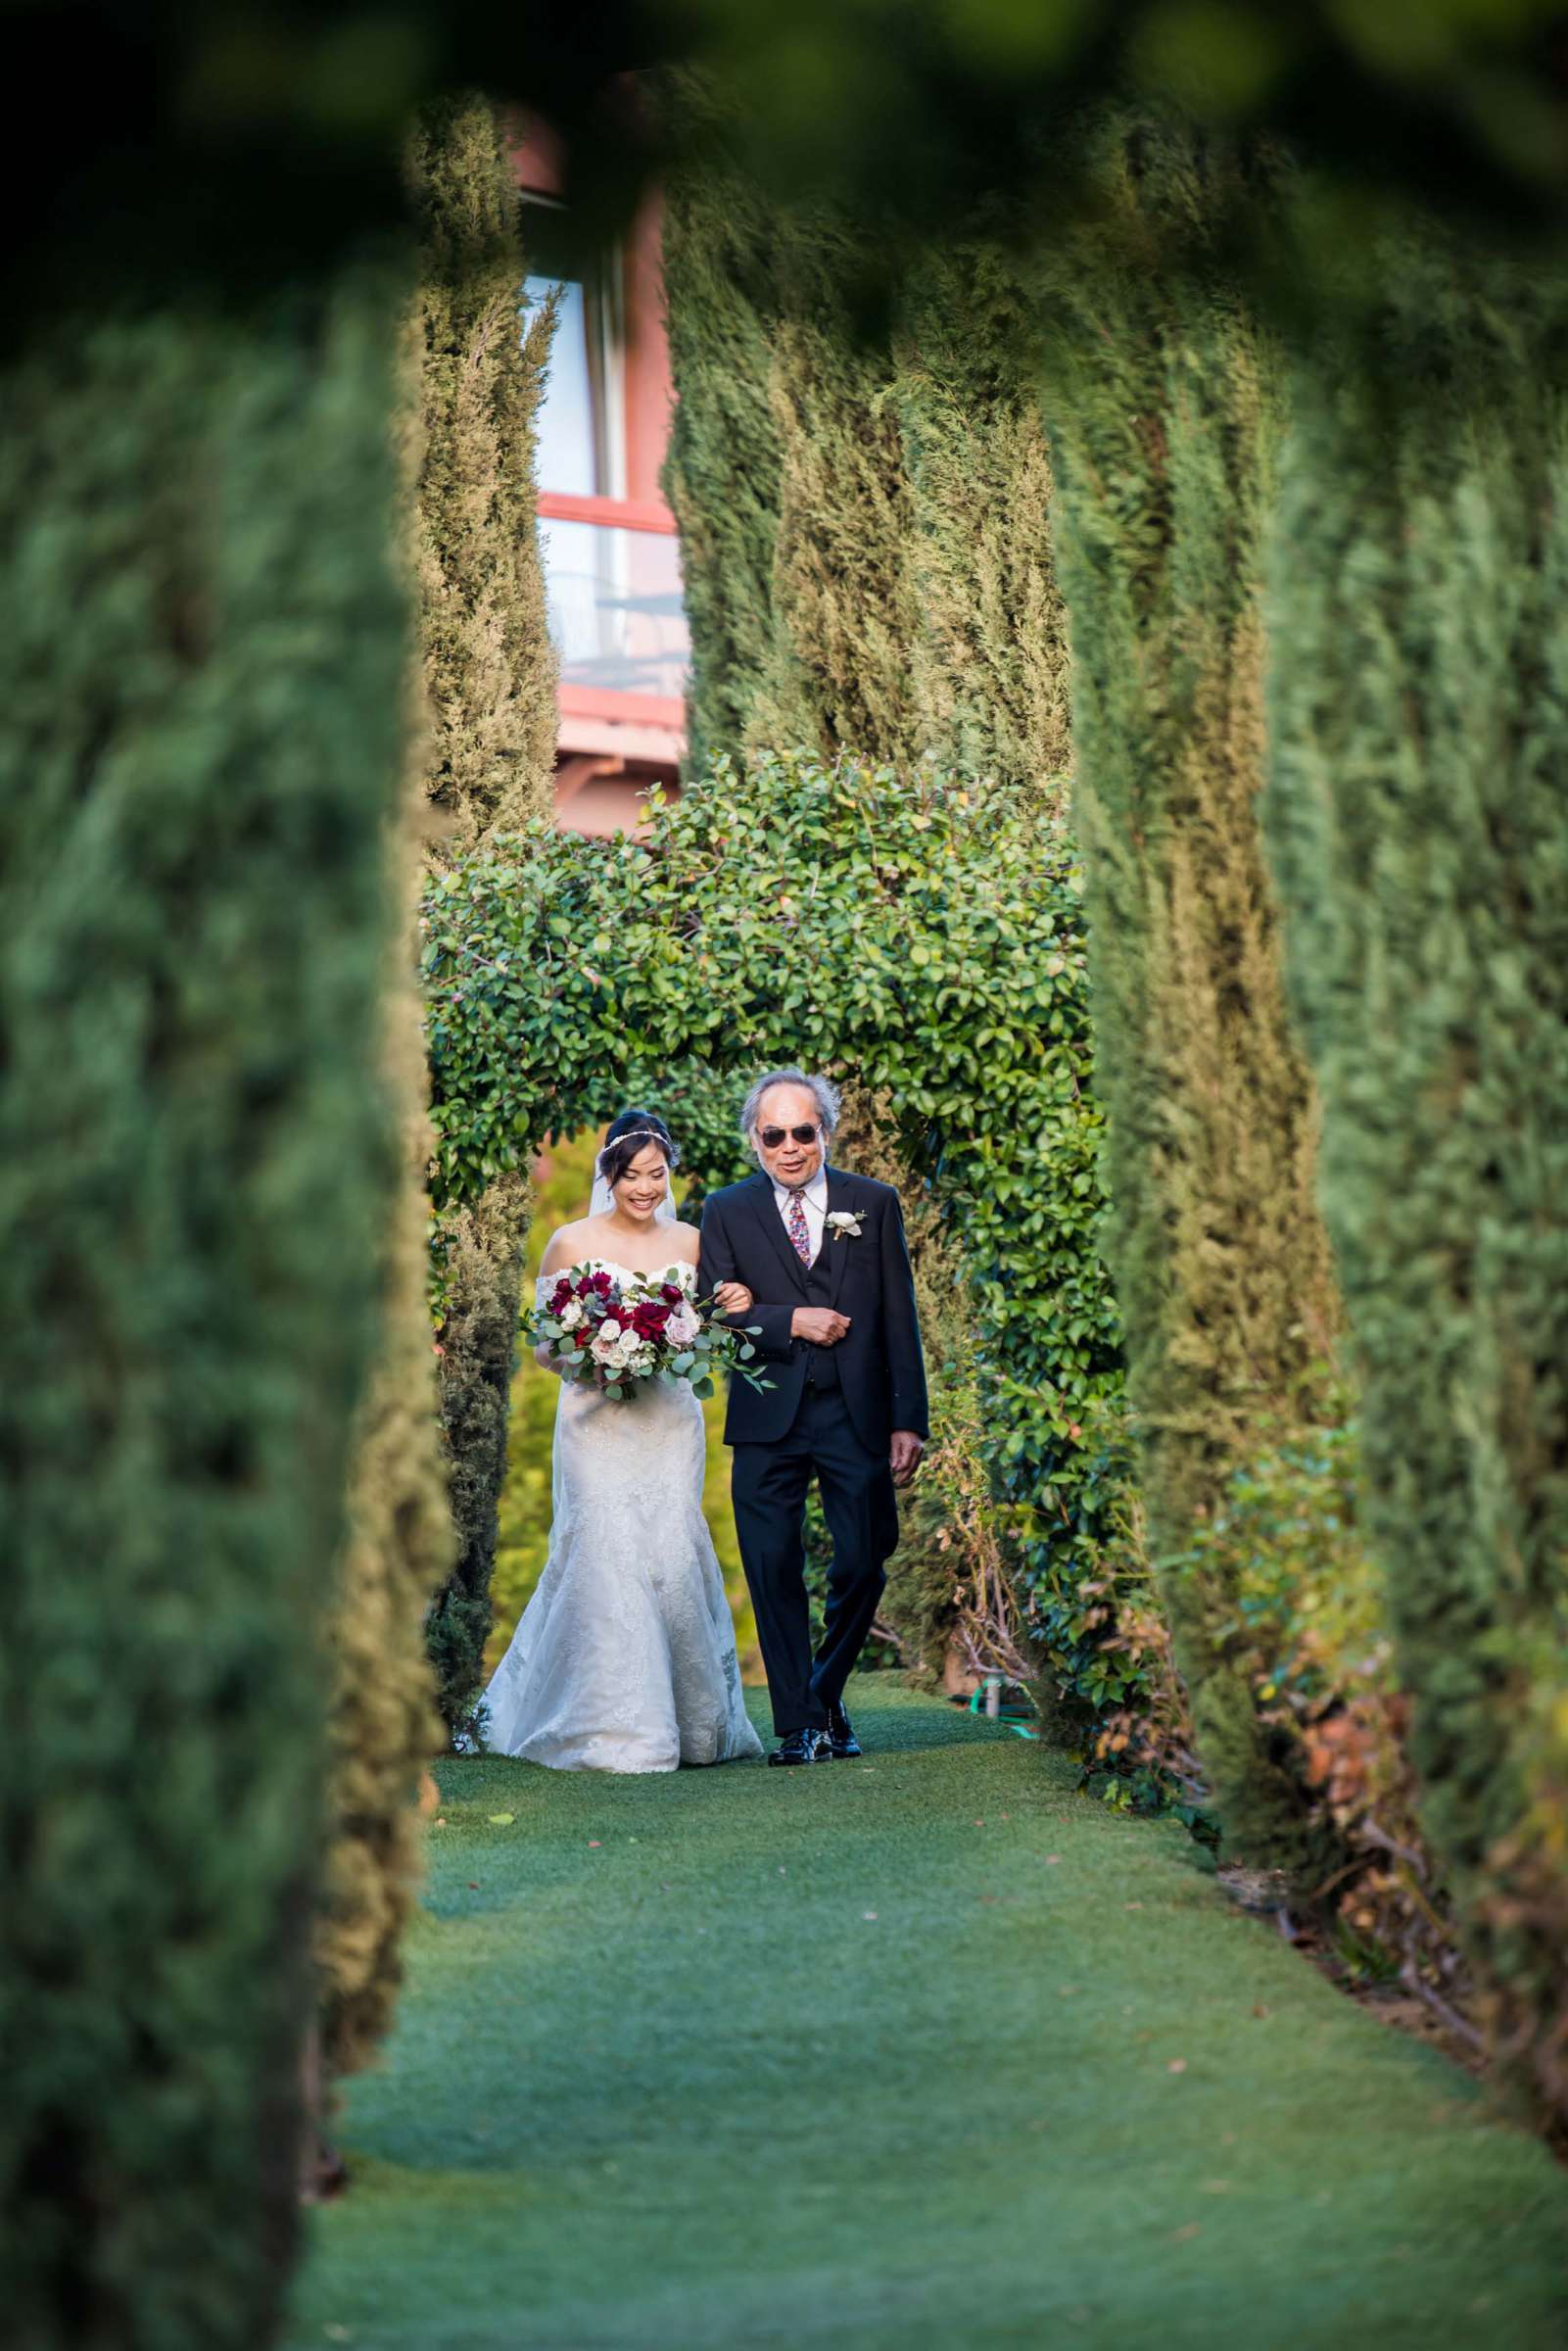 Falkner Winery Wedding, Valerie and Josh Wedding Photo #77 by True Photography